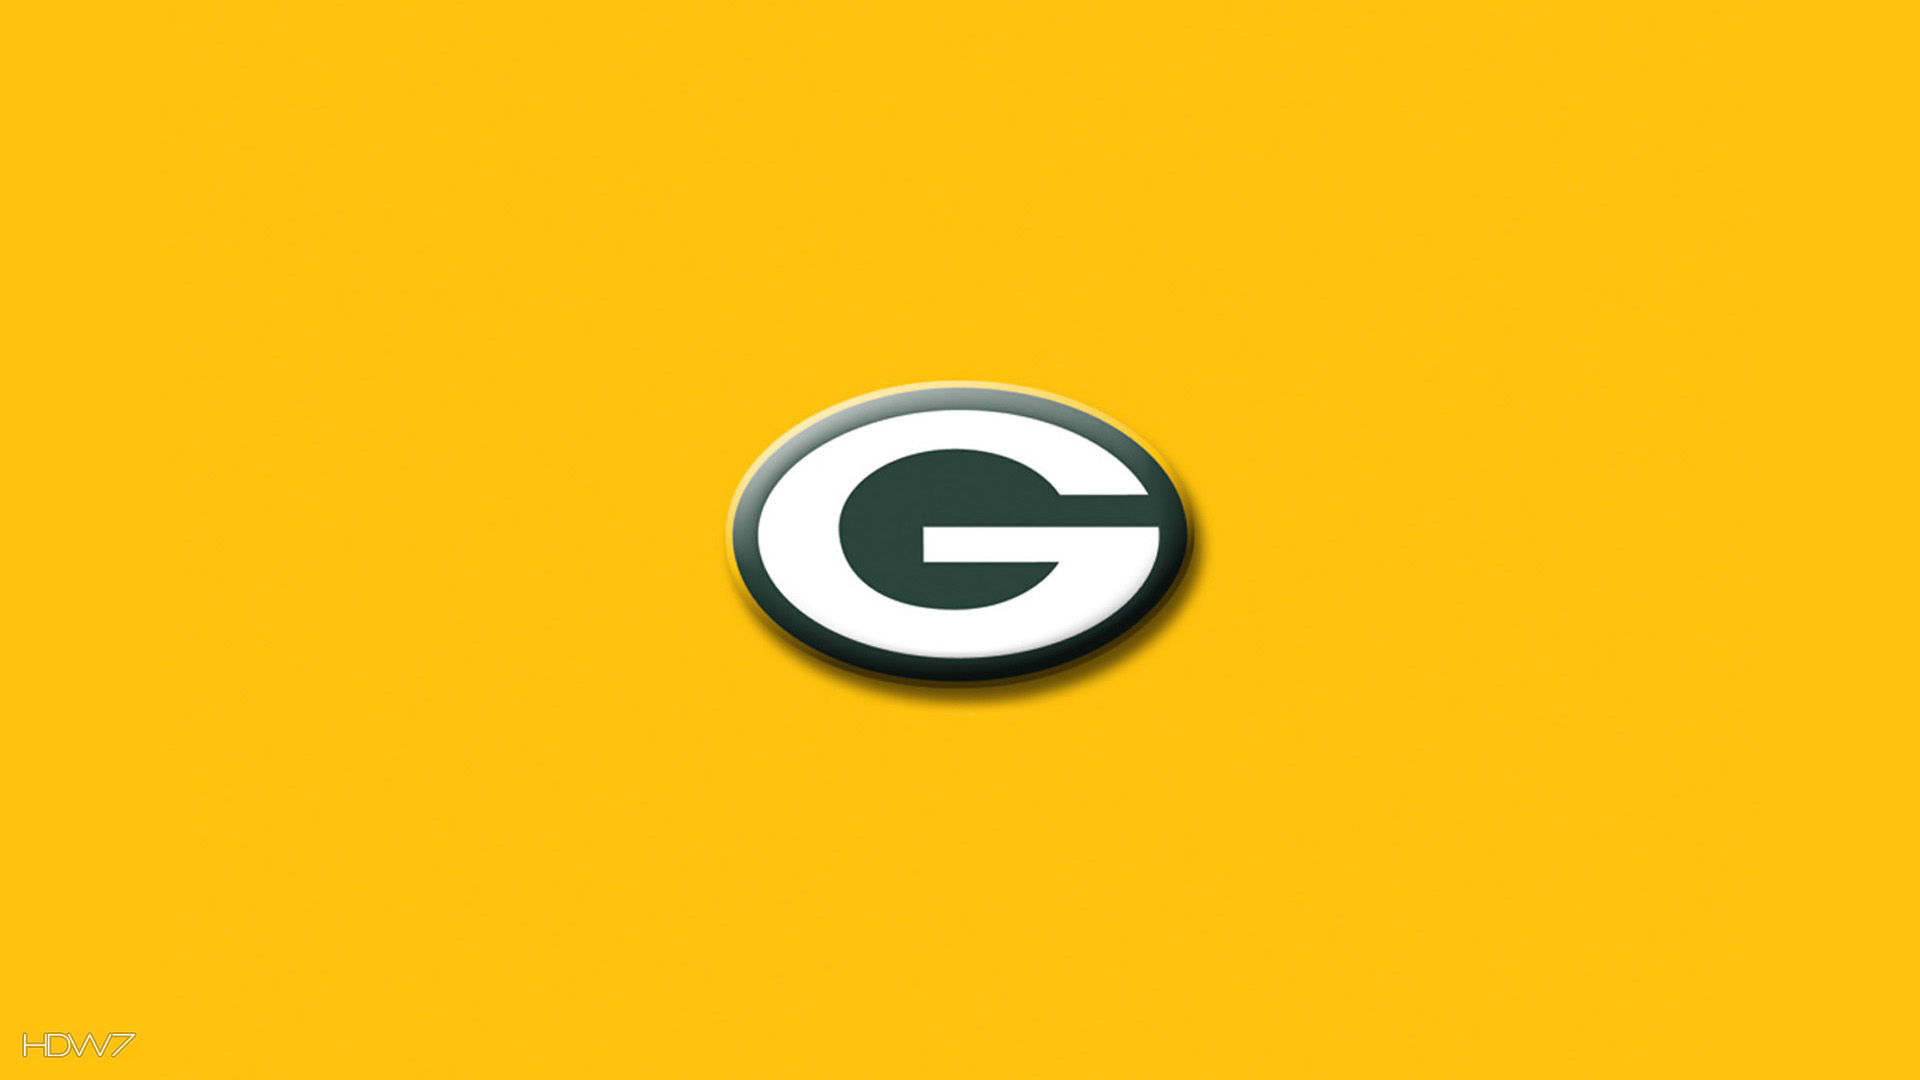 Green Bay Packers Simple Logo Yellow Wallpaper Hd Wallpaper